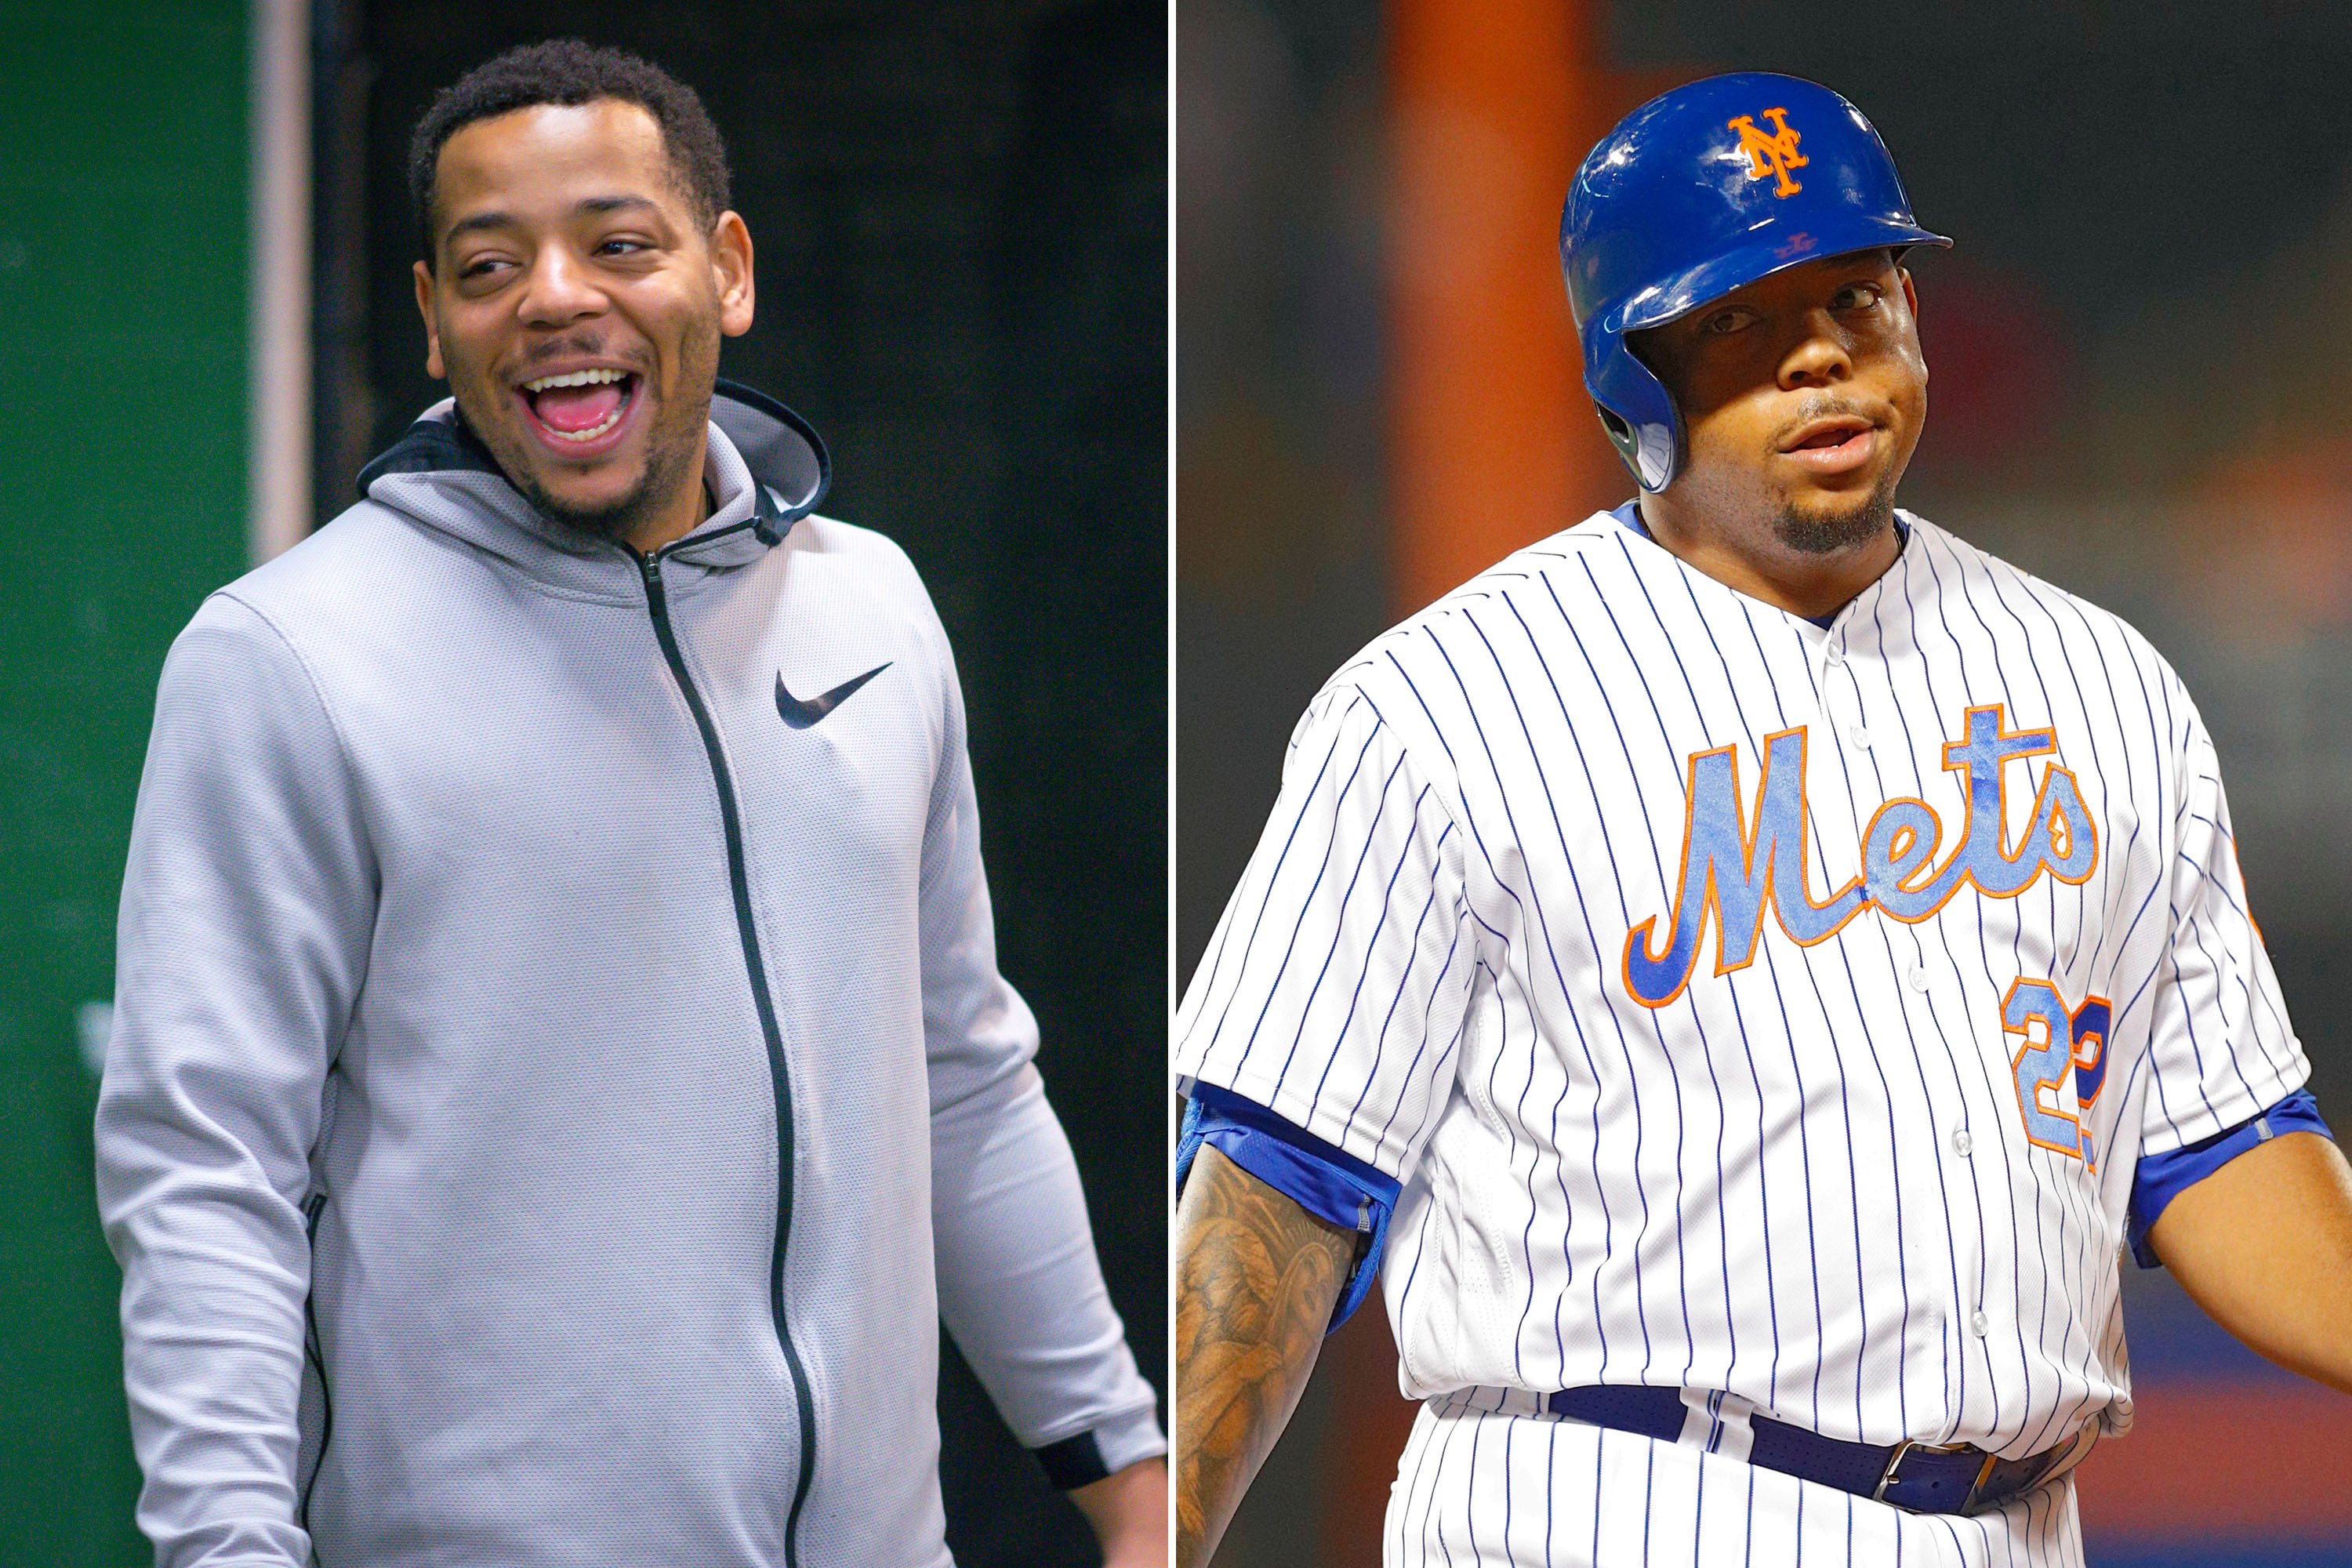 Inside look at Dominic Smith's fitness transformation